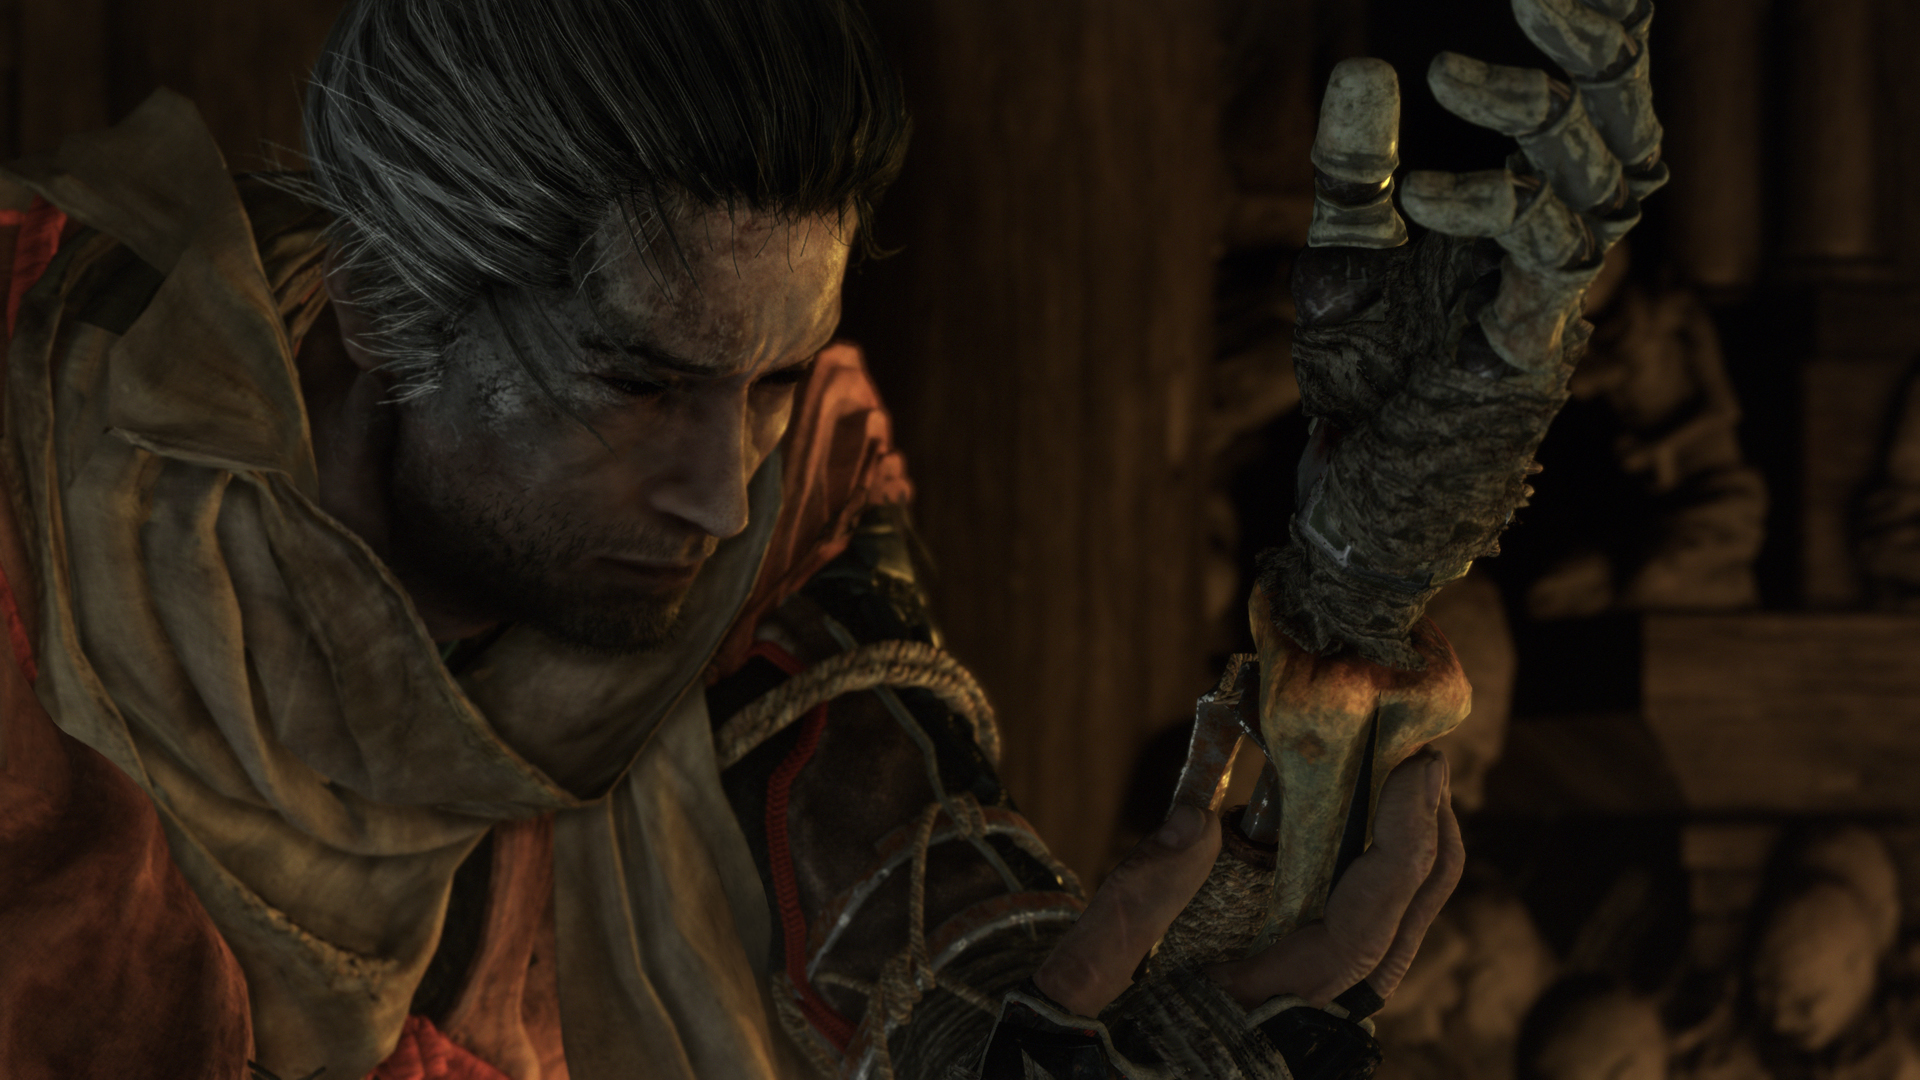 Sekiro: Shadows Die Twice sells 2 million copies in 10 days